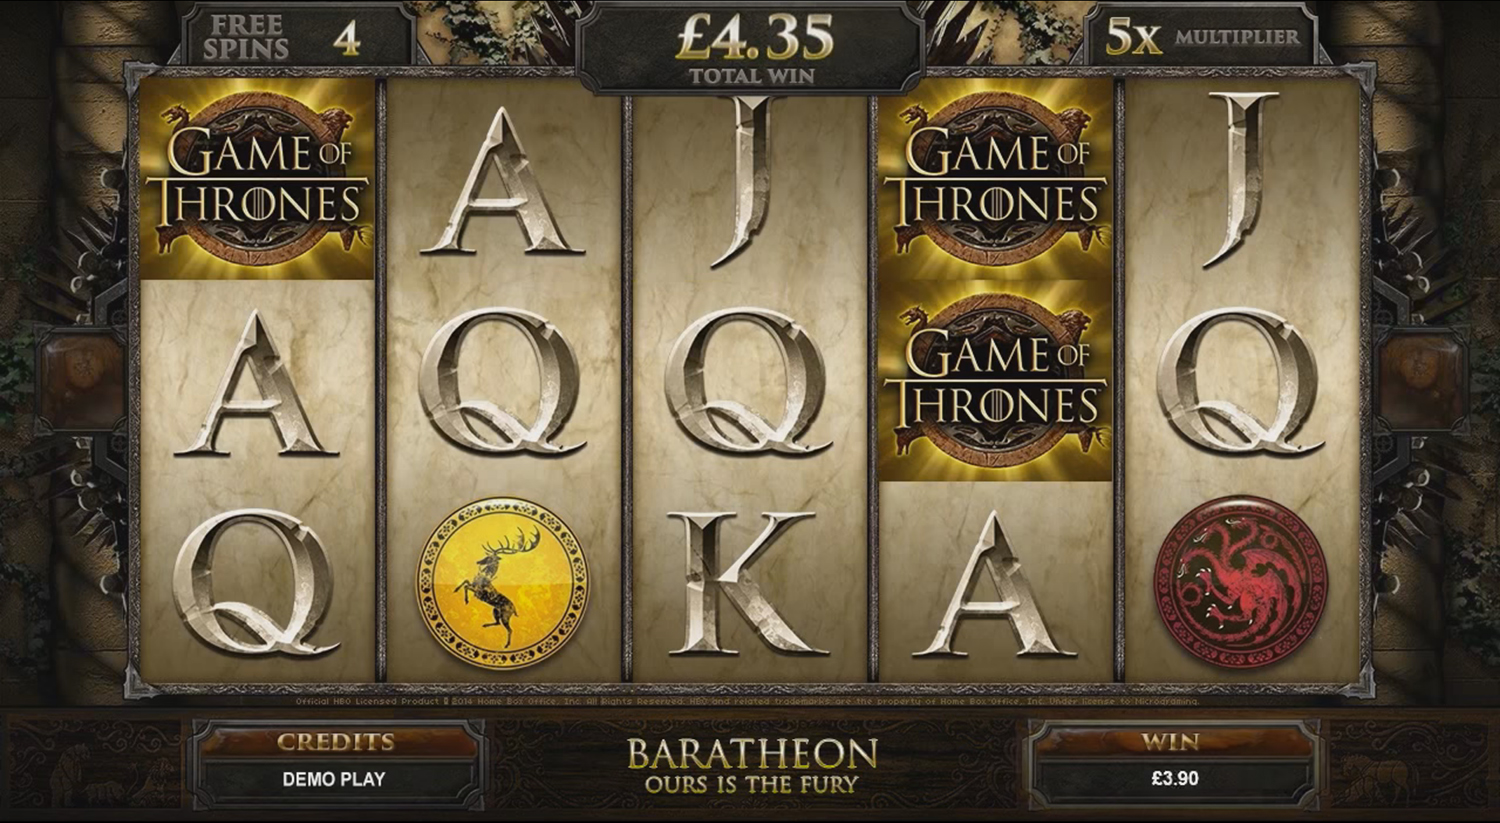 Microgaming - Game of Thrones